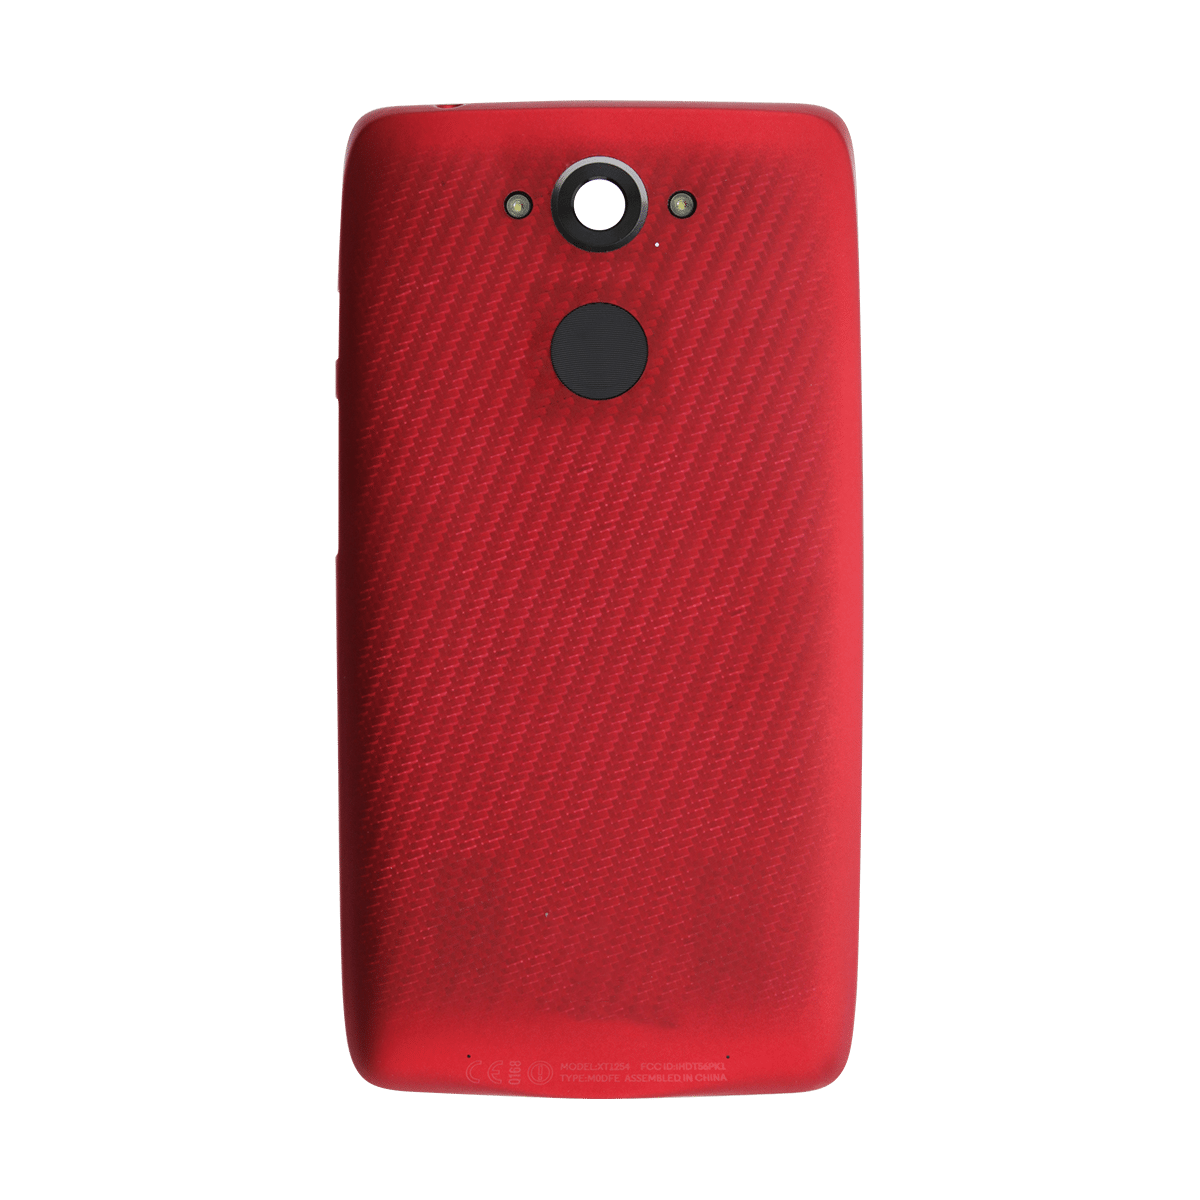 Motorola Droid Turbo Back Battery Cover Replacement